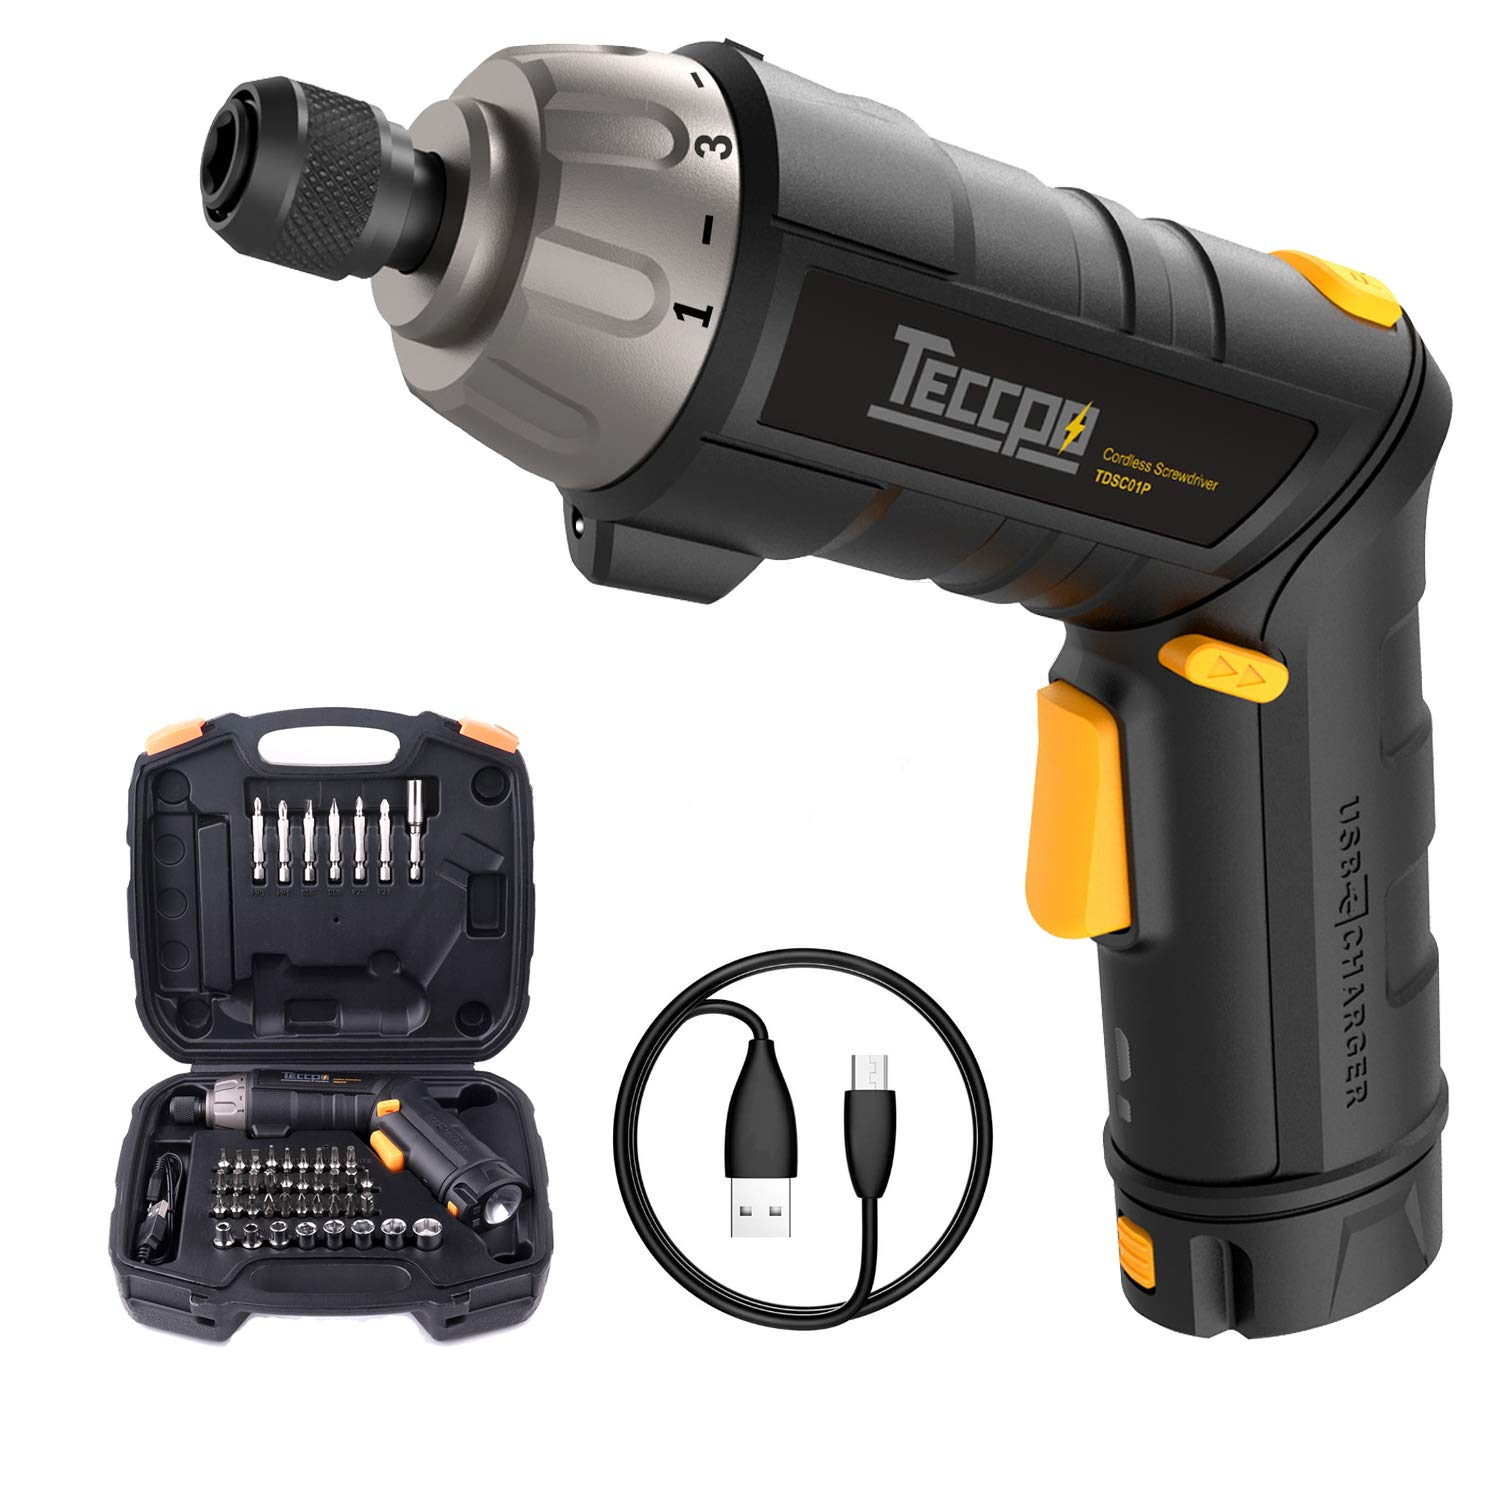 Electric Screwdriver Rechargeable, 4V Max 2.0Ah Li-ion, Torque 6Nm, 9+1 Torque Gears, 45 Pcs sets/bits, Adjustable 2 Position Handle with LED Torch, Cordless Screwdriver USB Charging. TECCPO-TDSC01P